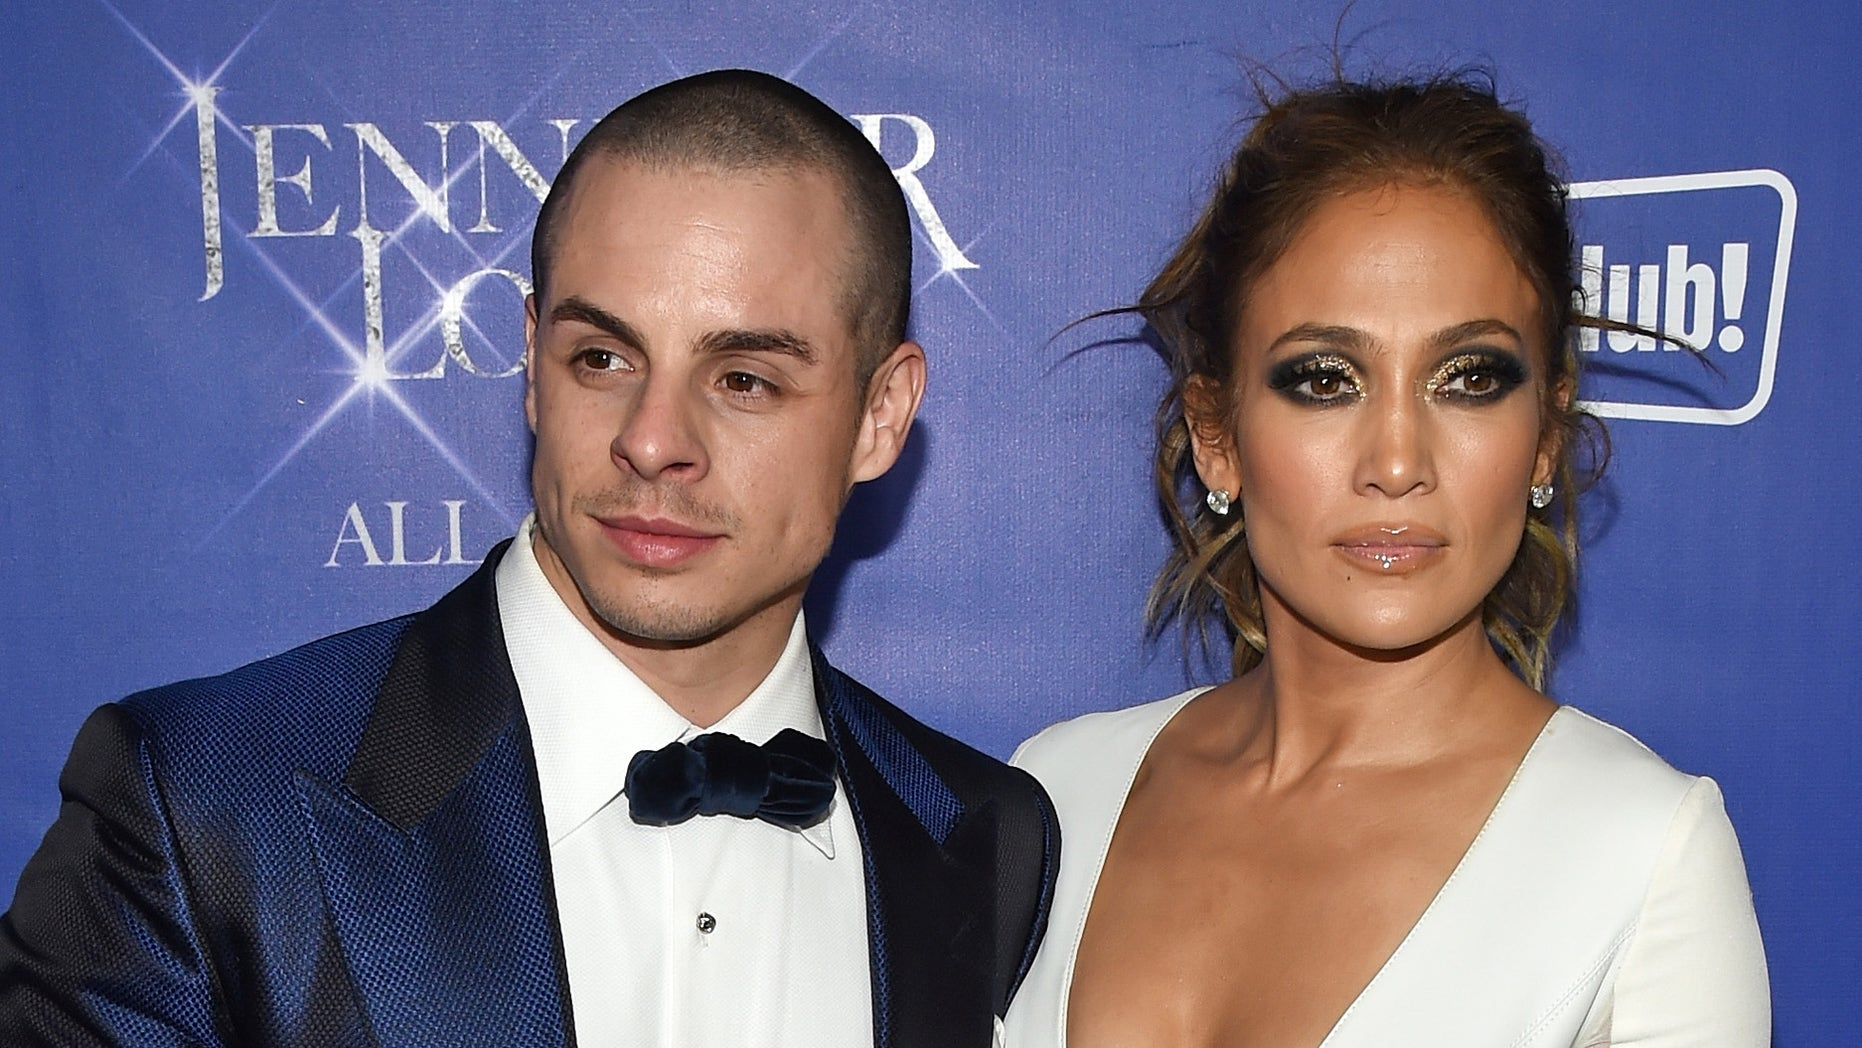 "LAS VEGAS, NV - JANUARY 21:  Choreographer/dancer Beau ""Casper"" Smart (L) and singer/actress Jennifer Lopez attend the after party for her residency ""JENNIFER LOPEZ: ALL I HAVE"" and the grand opening of Mr. Chow at Caesars Palace on January 21, 2016 in Las Vegas, Nevada.  (Photo by Ethan Miller/Getty Images)"